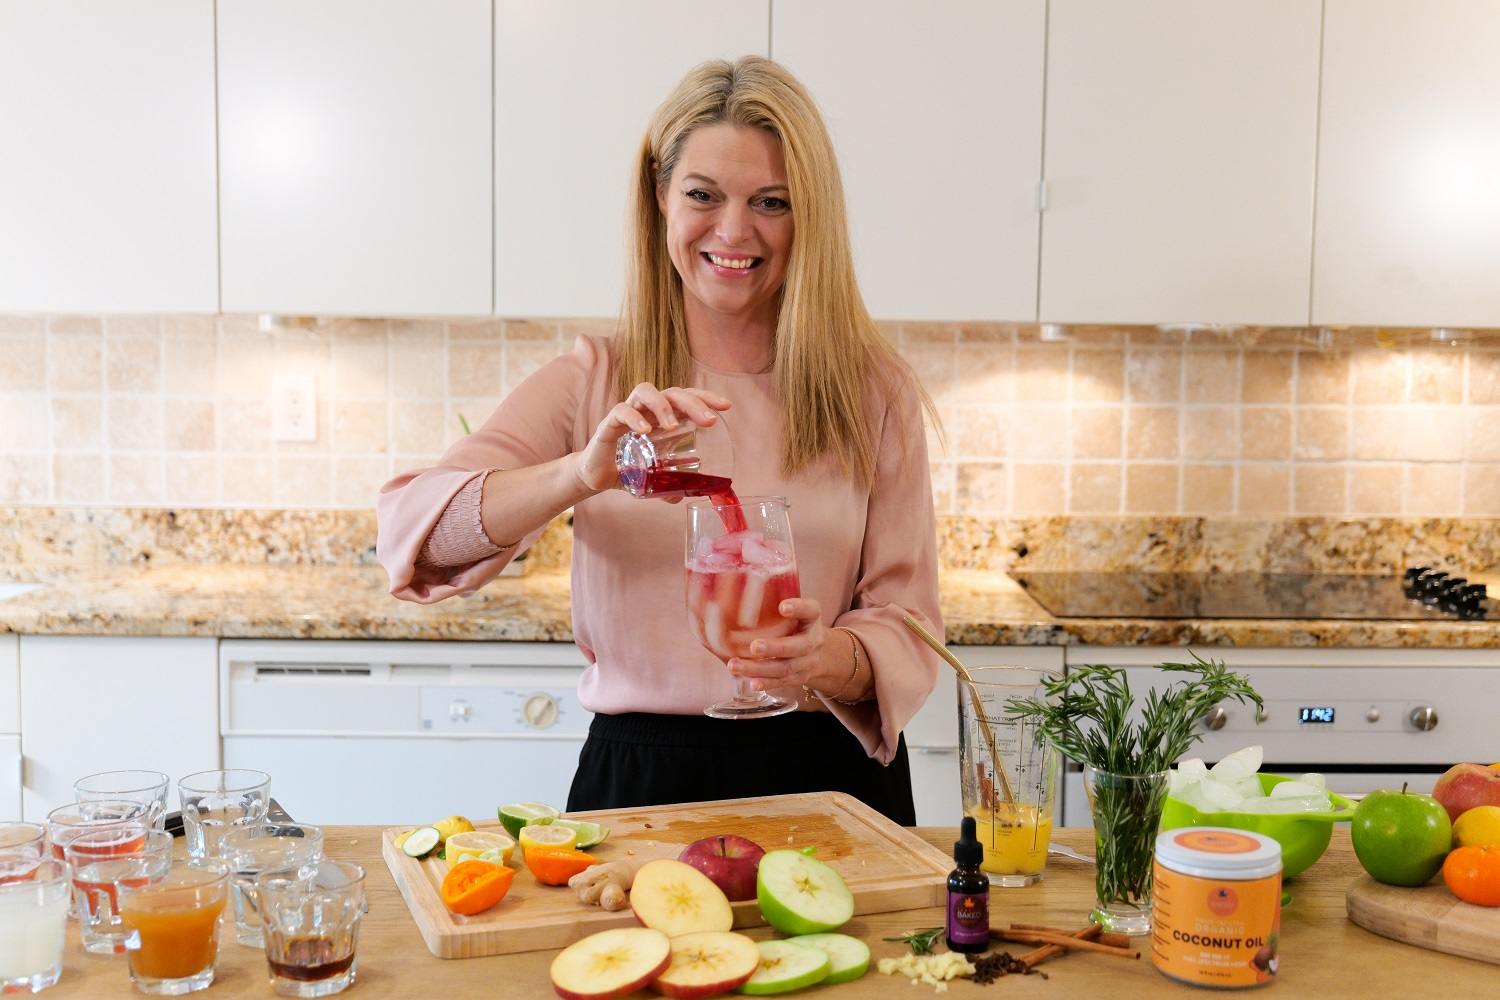 Jenny pouring a red colored drink in her kitchen with a spread of fruits on the counter in front of her